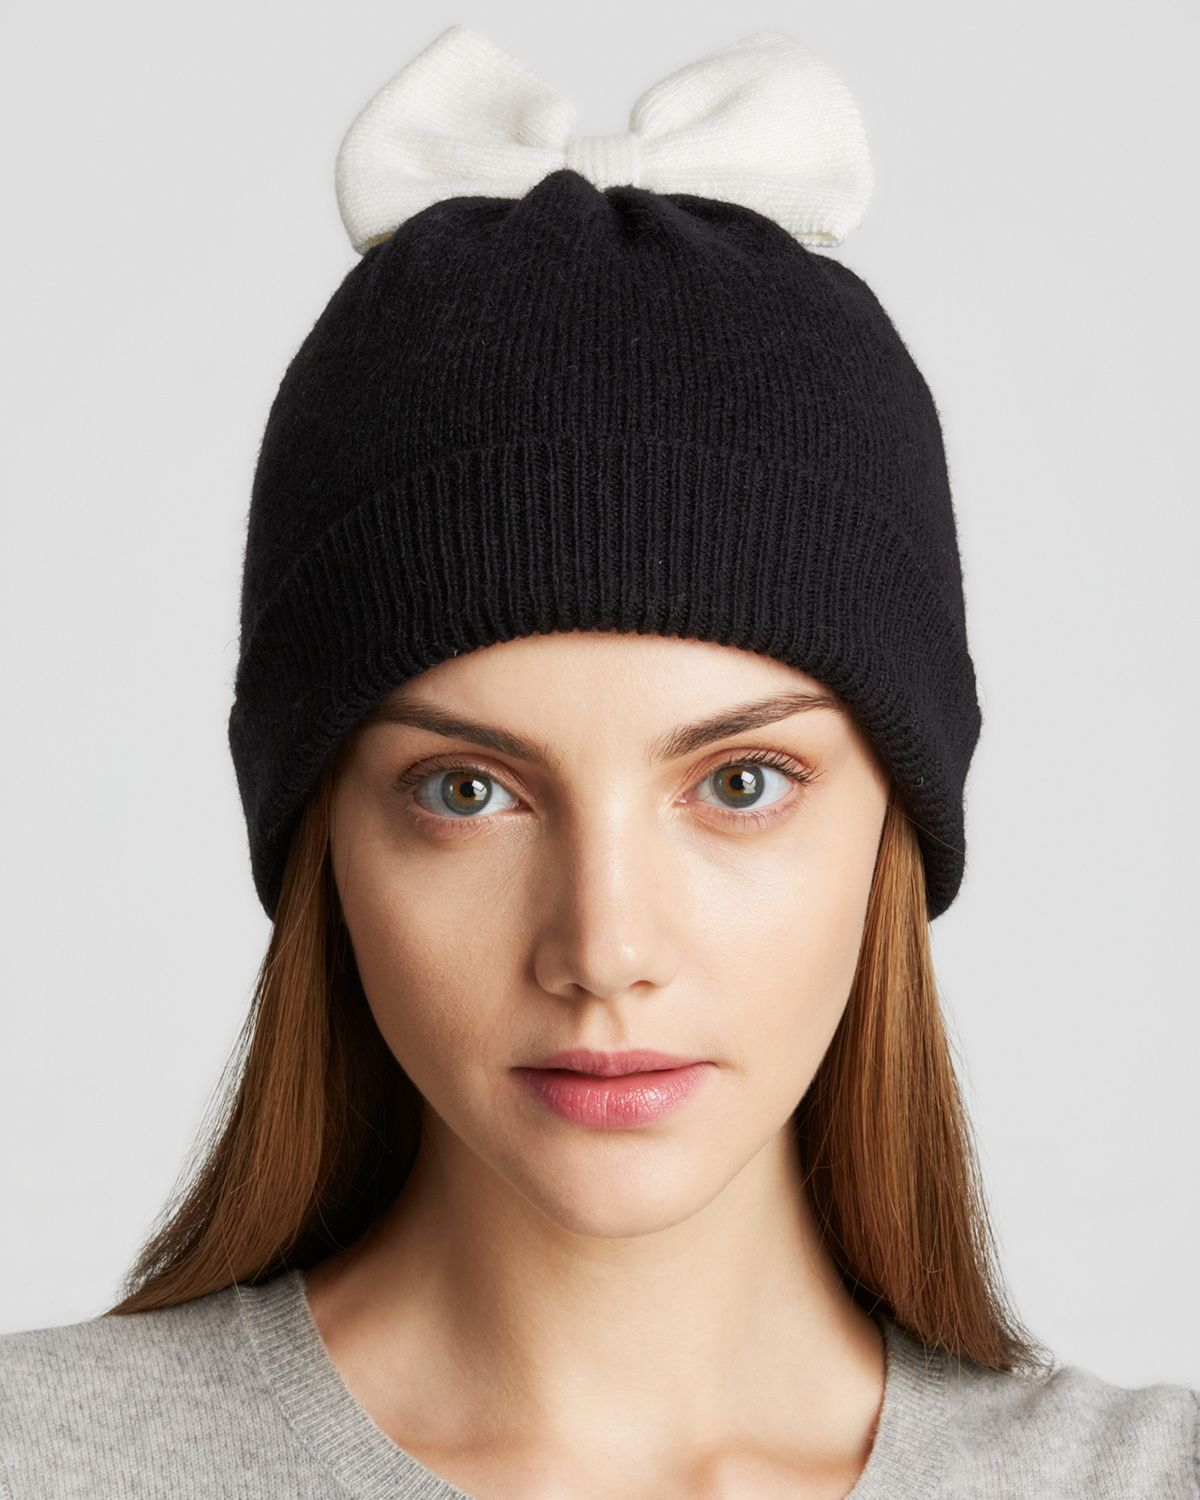 Lyst - Kate Spade Colorblock Bow Beanie in Black a540a56062c